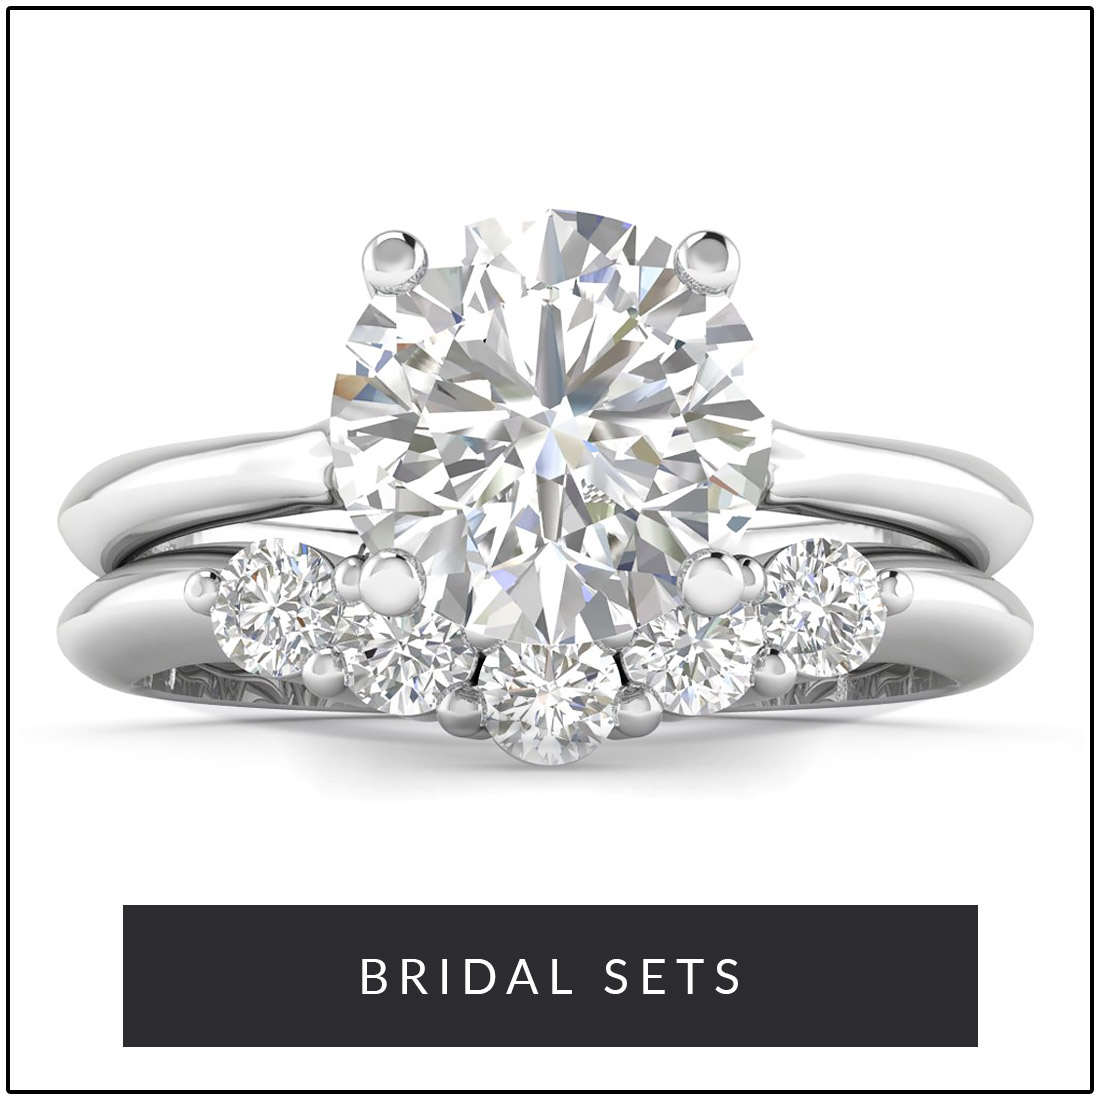 Engagement and Wedding Bridal Sets